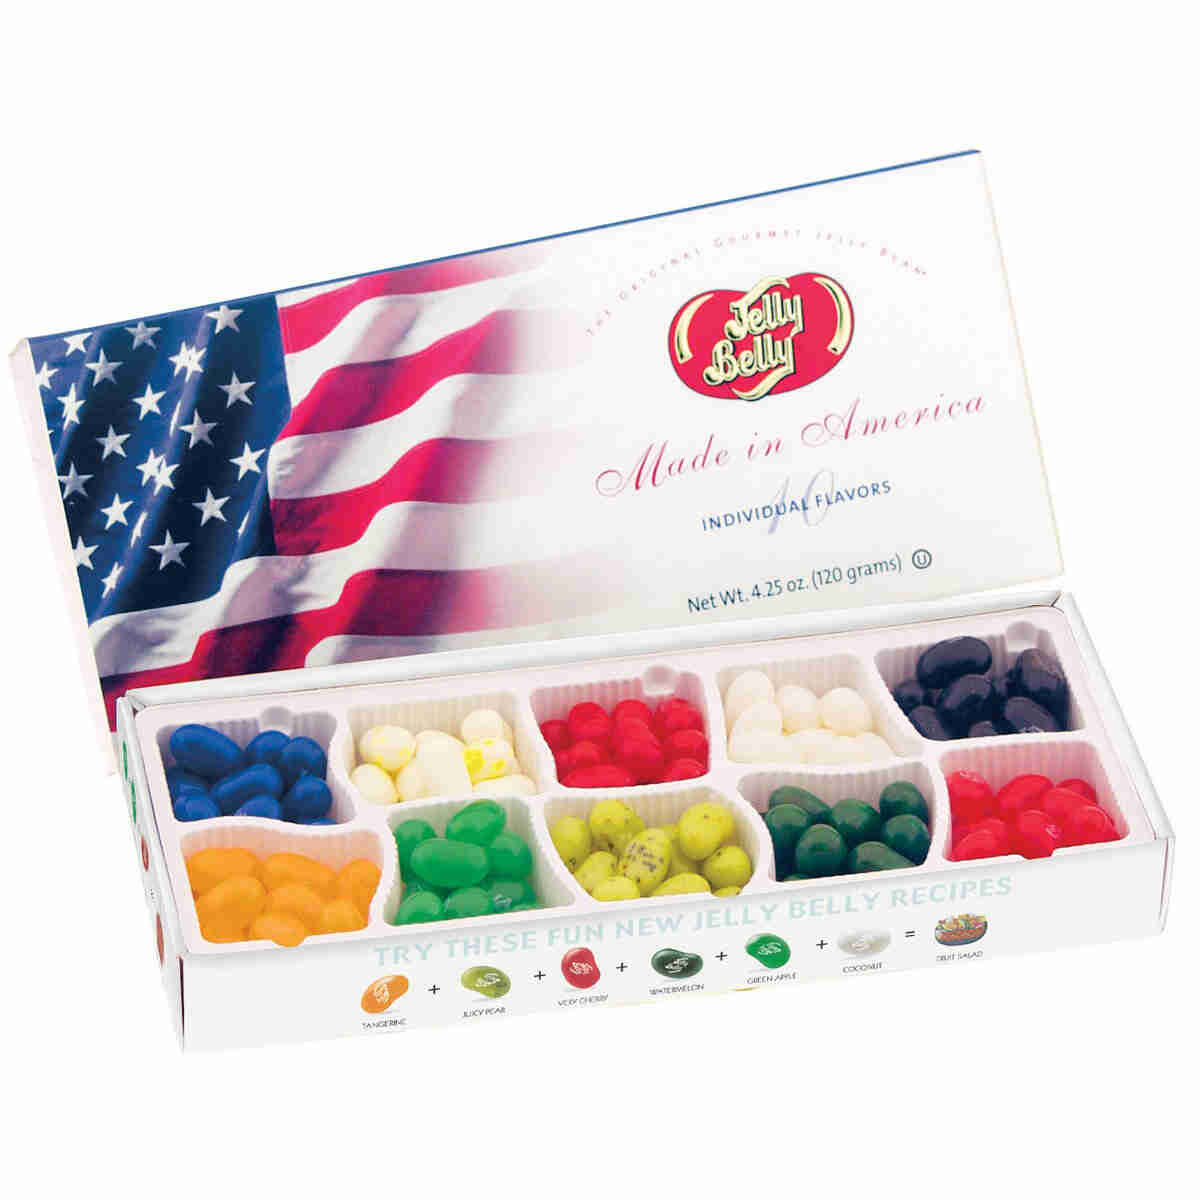 10 Flavor Jelly Bean Patriotic Gift Box